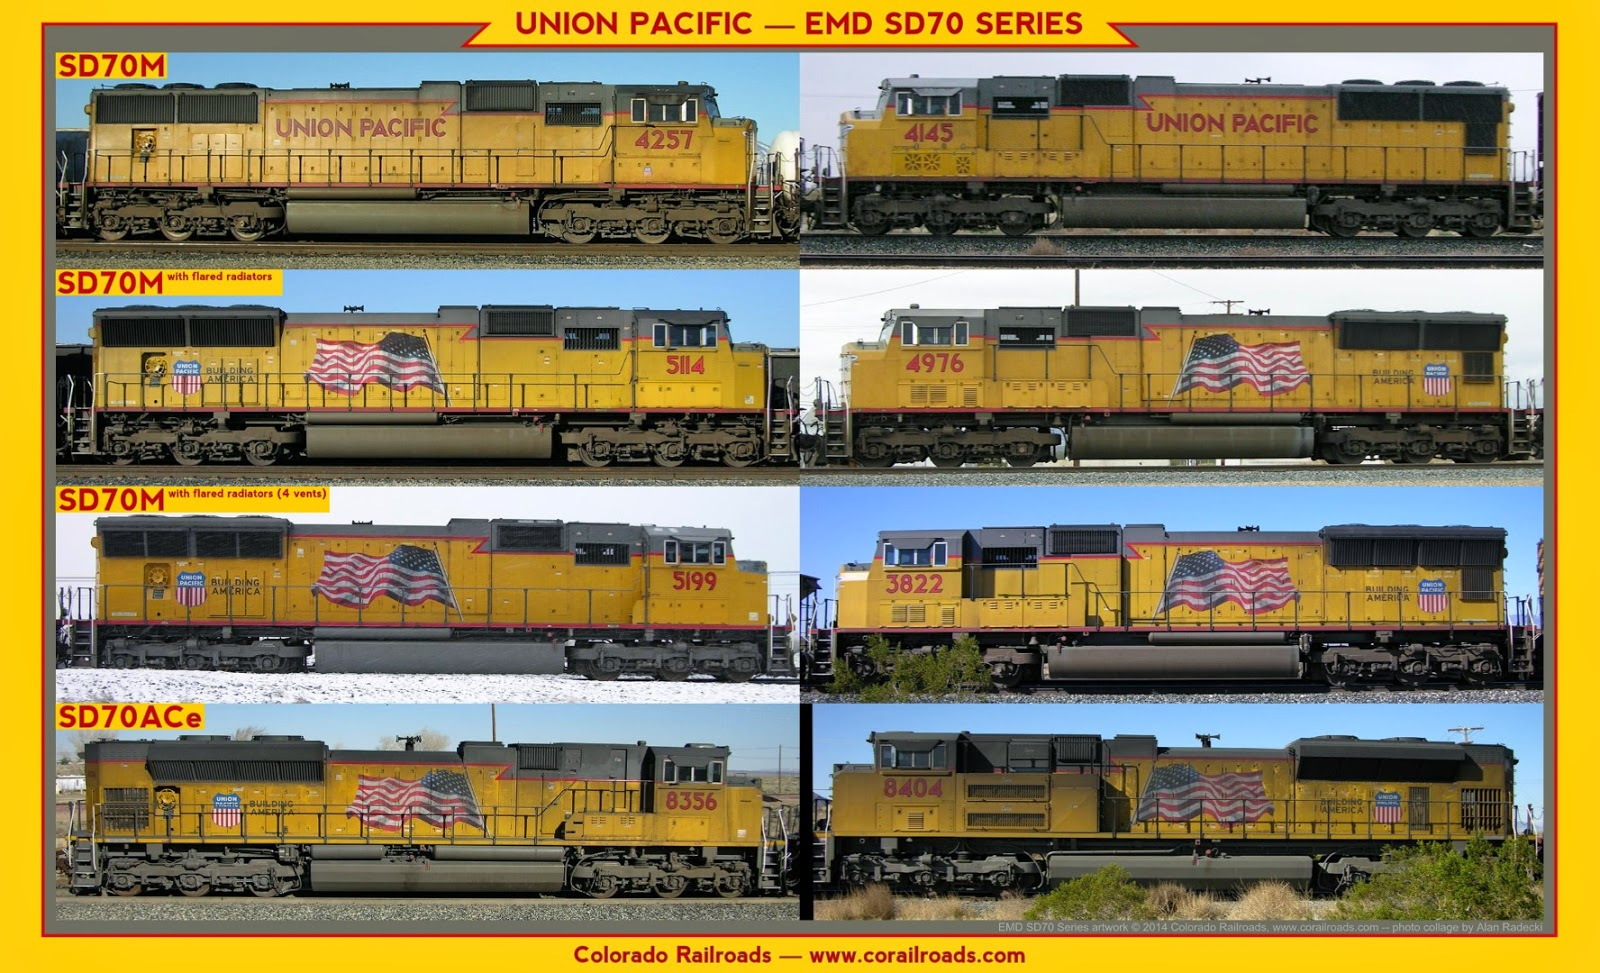 A vertical comparison between different versions of EMDs SD70 locomotive as seen on the Union Pacific railroad